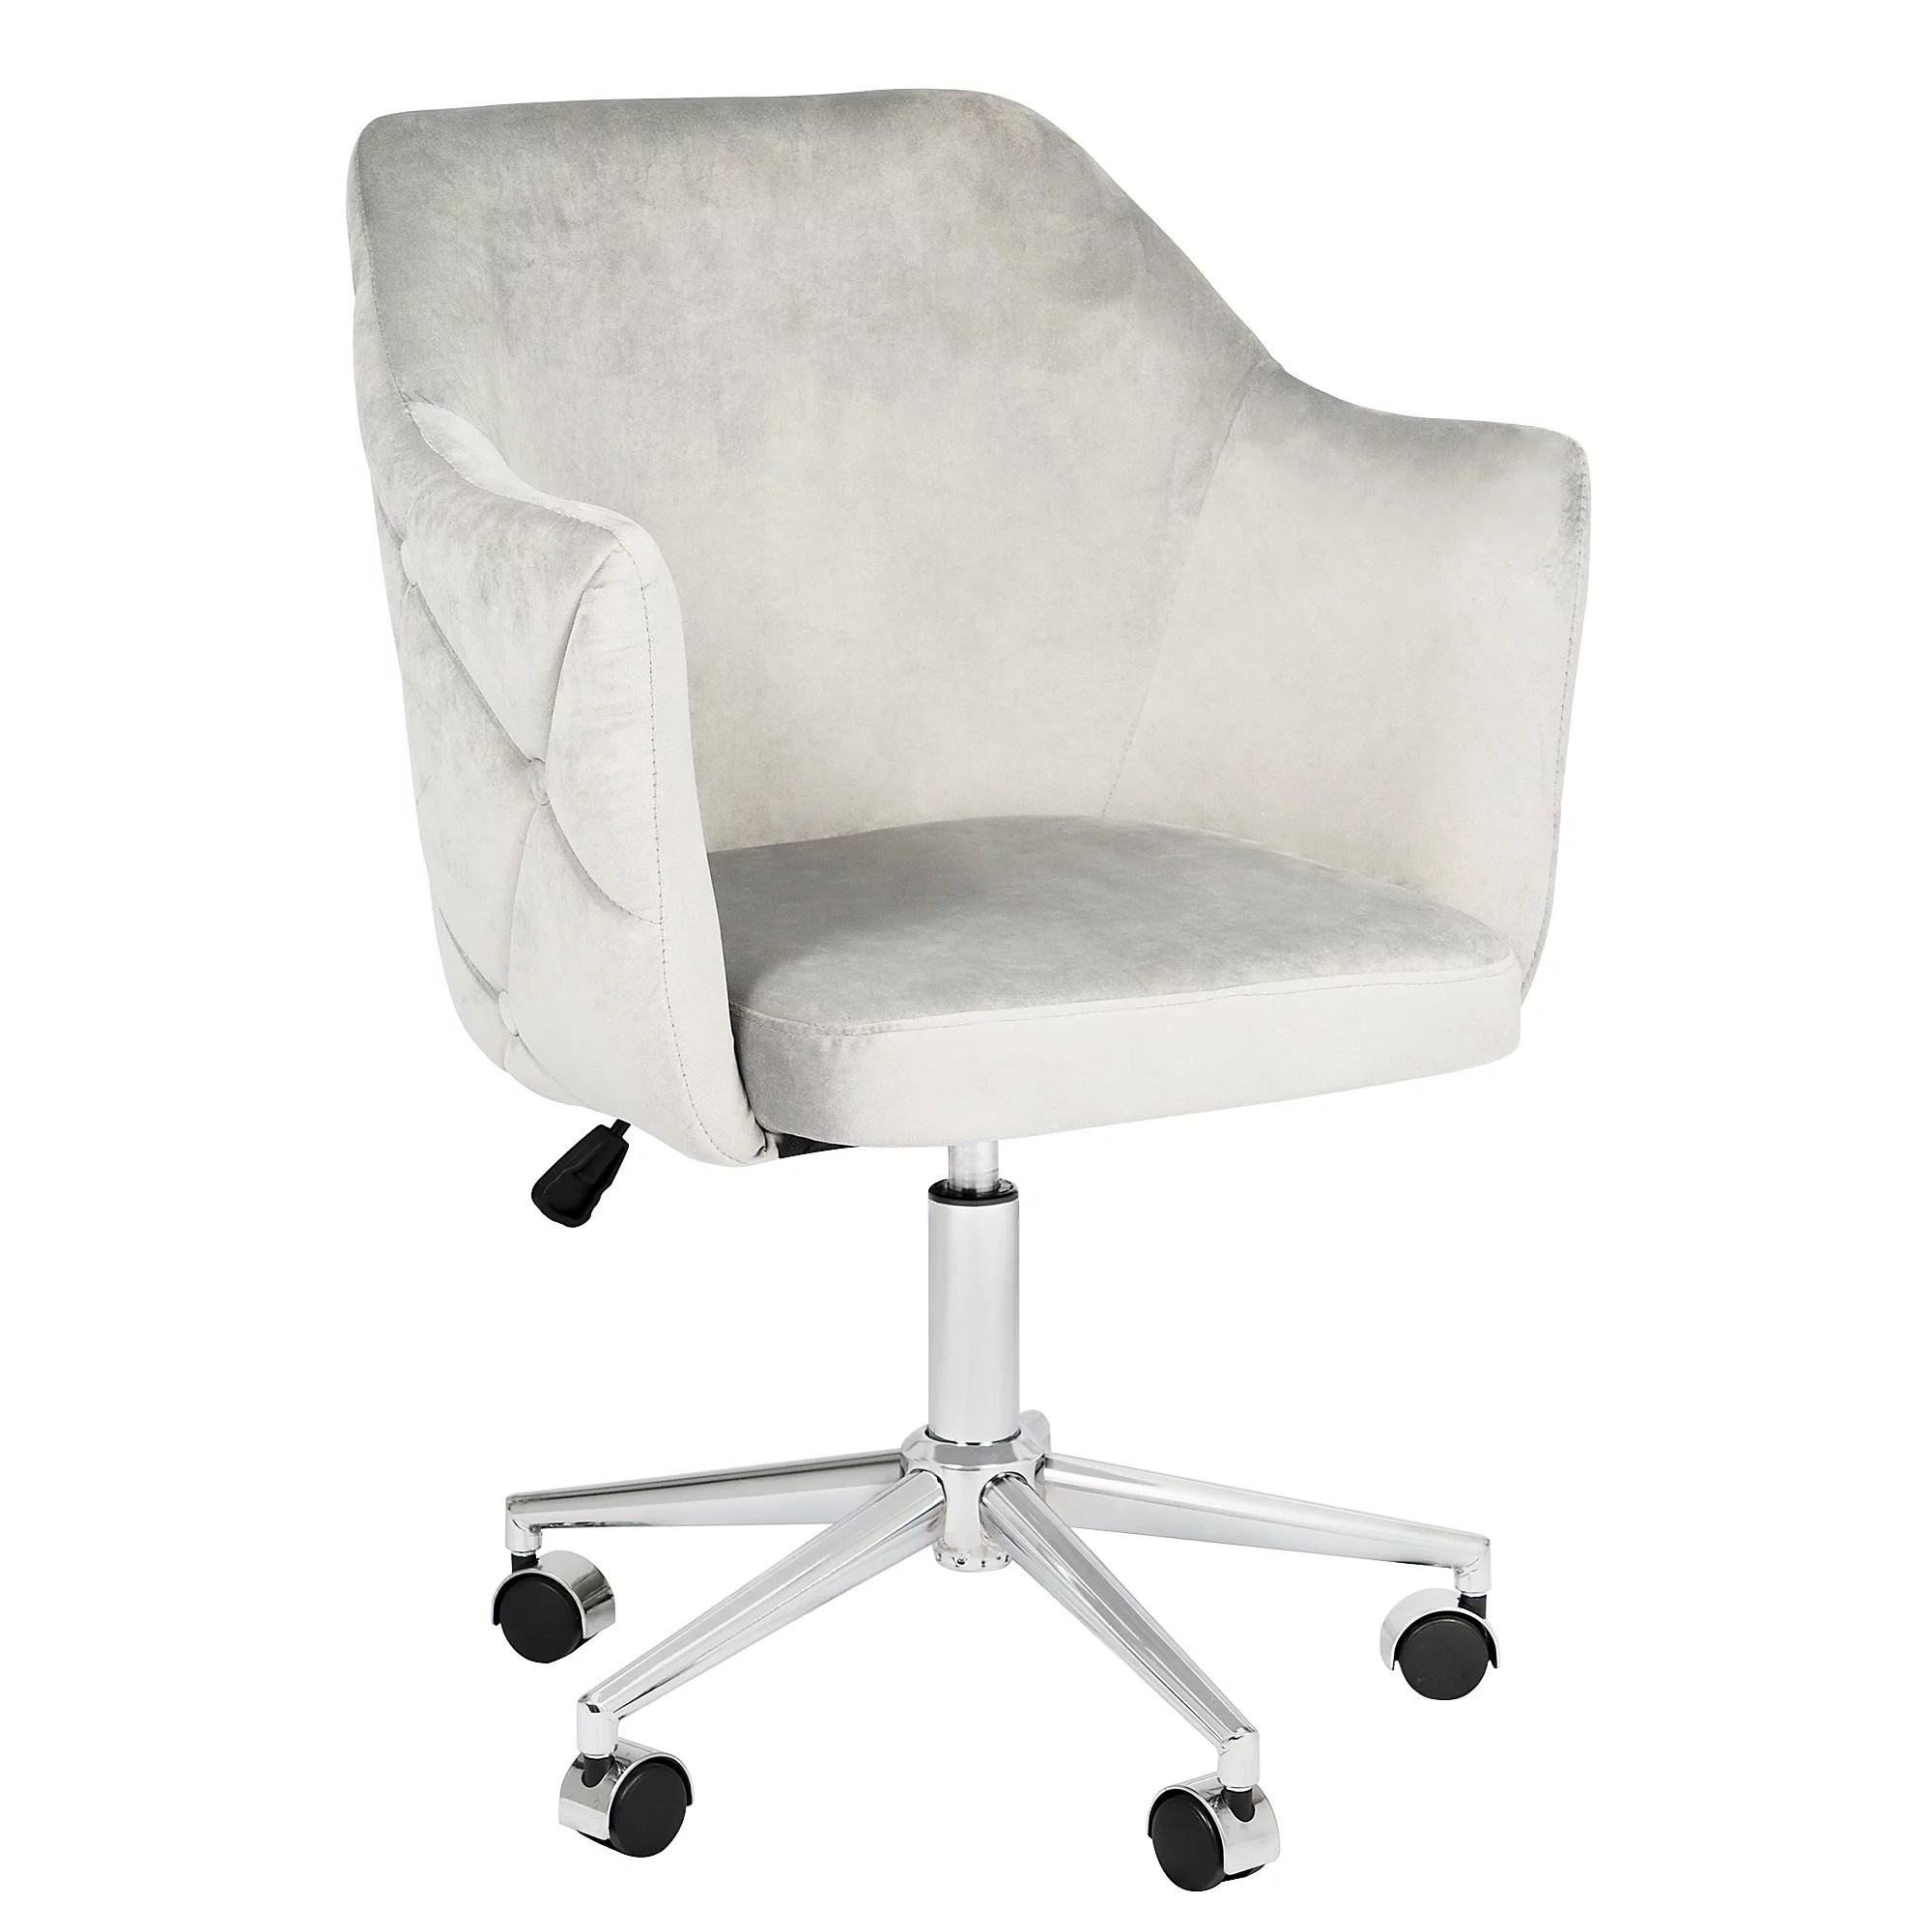 impressions pearl tufted vanity chair with adjustable swivel makeup ultra cozy vanity chair with stainless steel flat base